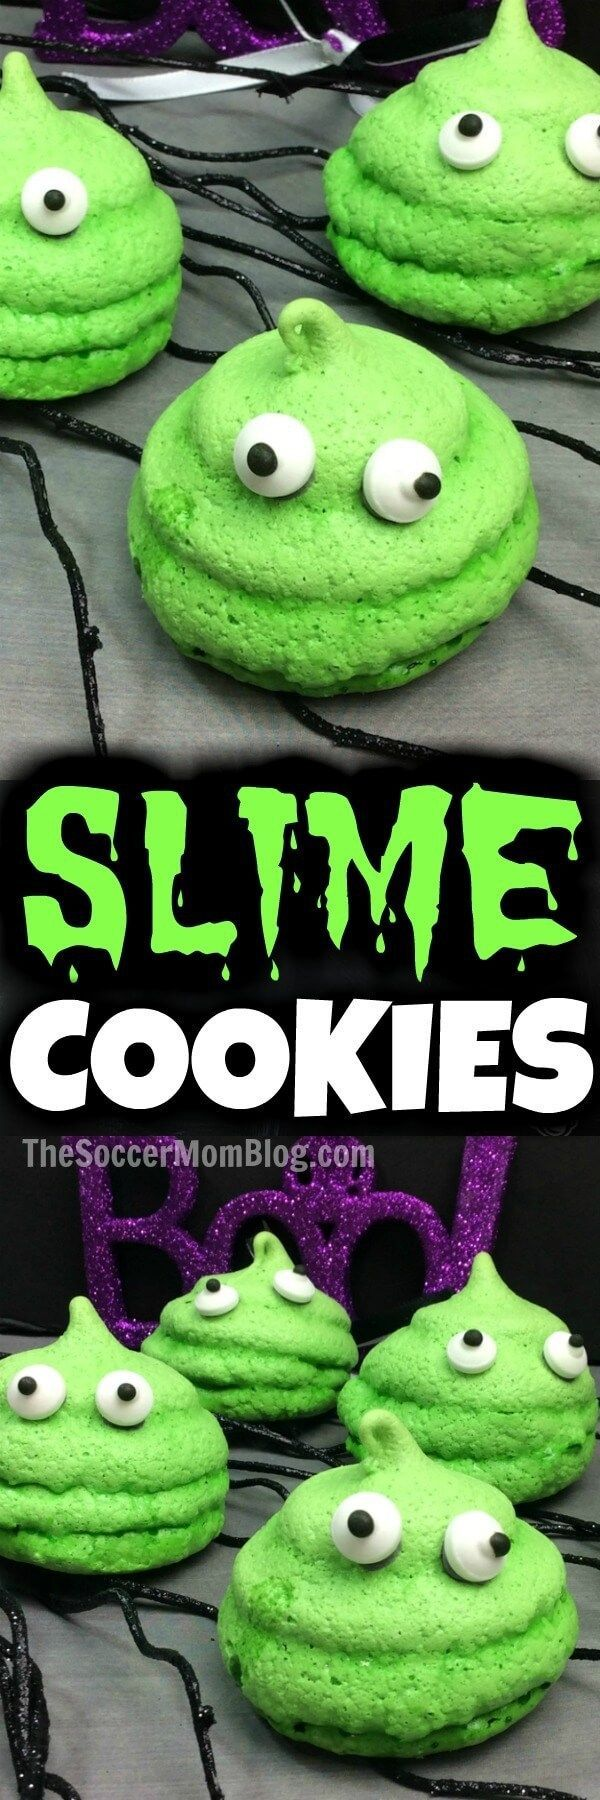 A slime recipe you're supposed to eat! These bright green monster slime cookies are a spooky Halloween party snack or anytime treat for slime fans.